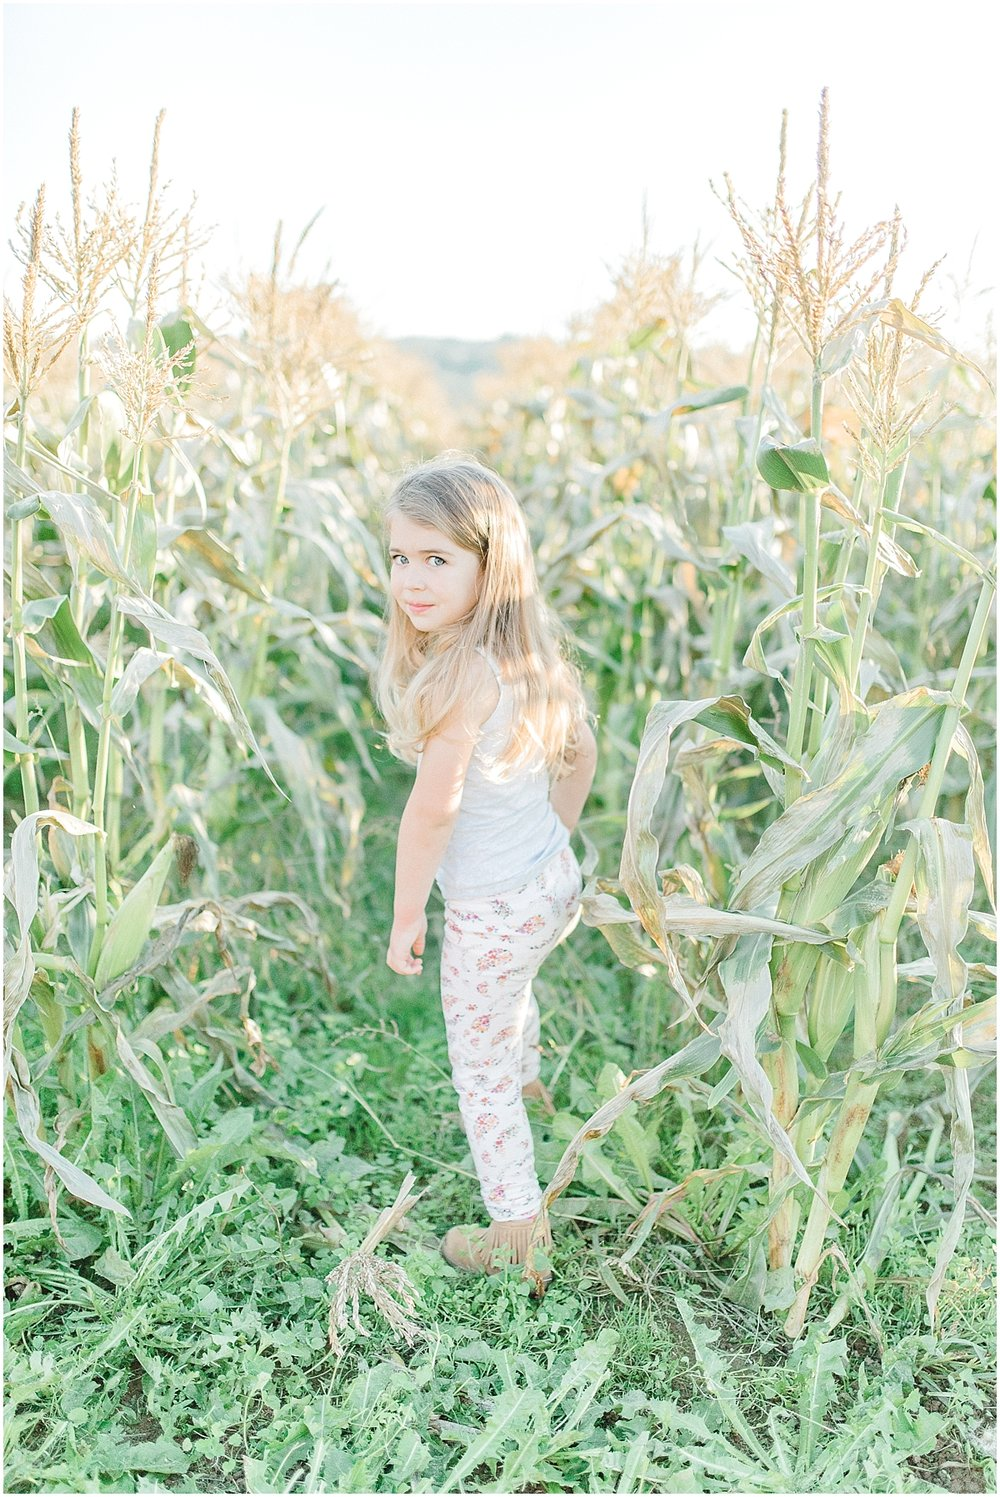 Pumpkin Patch Photo Shoot With Toddler and Mommy | Emma Rose Company Seattle Portland Light and Airy Wedding Photographer | Kindred Presets | Film_0009.jpg